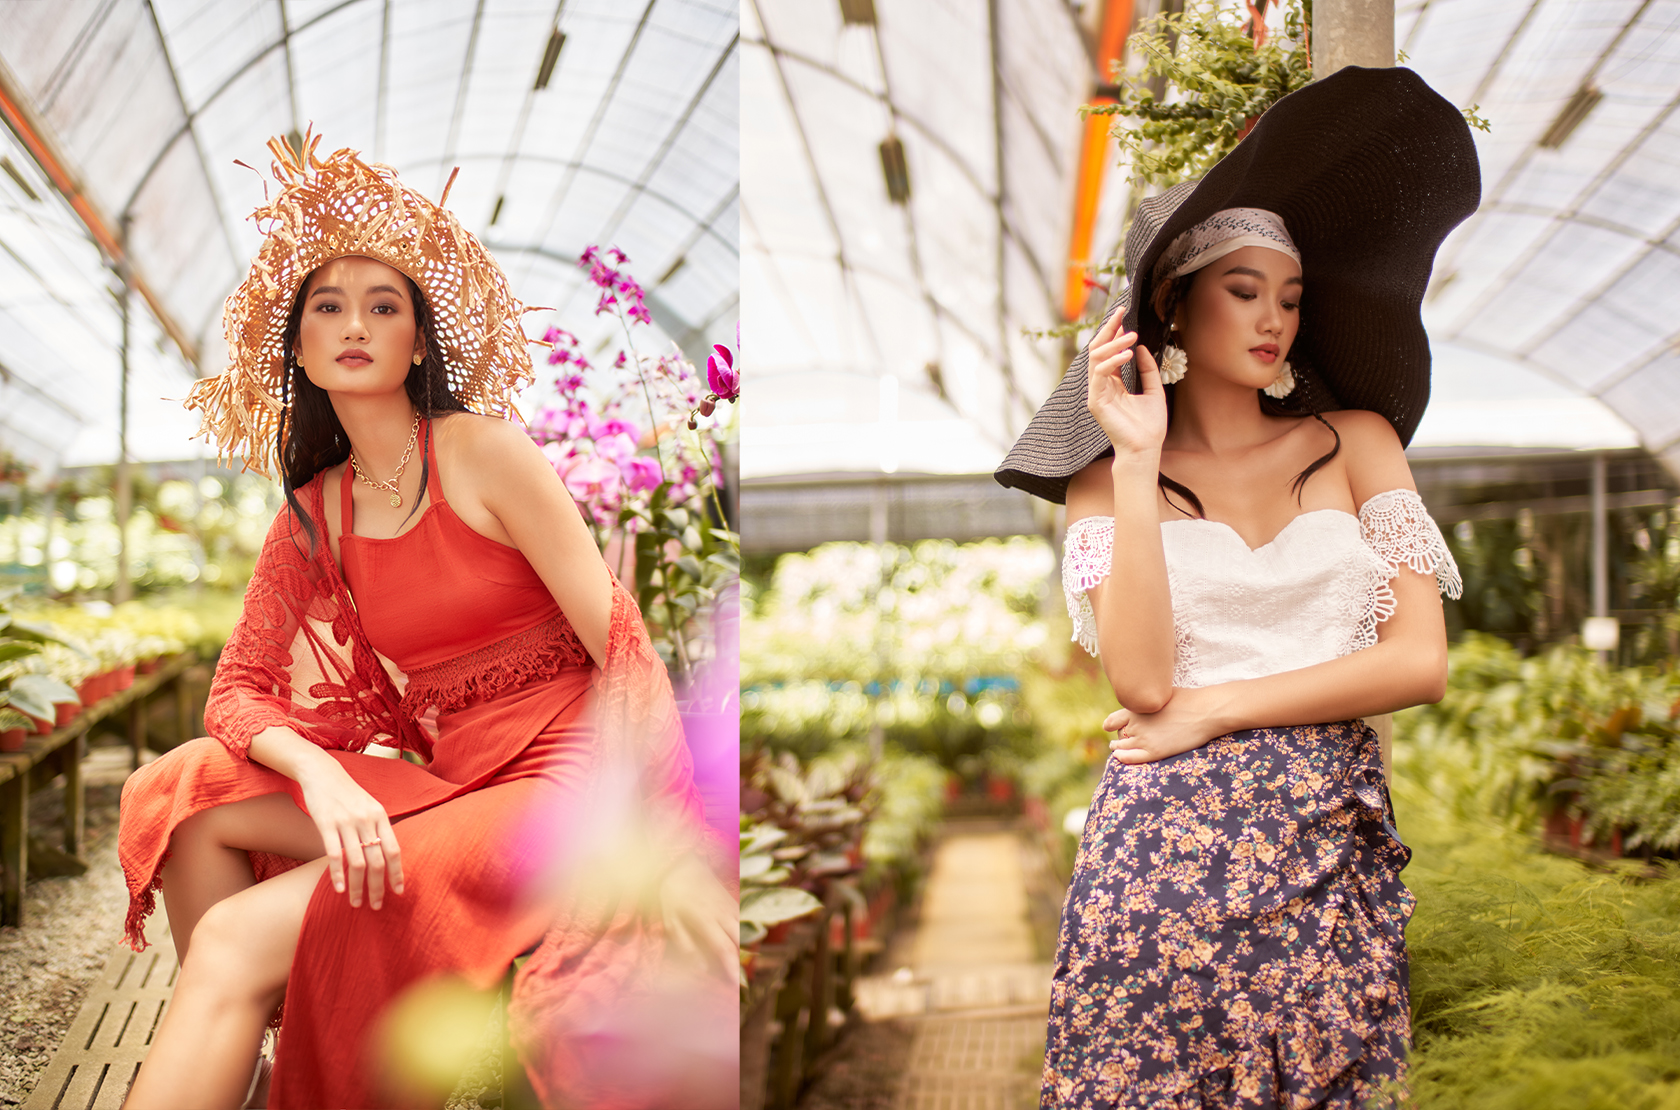 SHEIN UNVEILS COLLECTION FROM 5 FILIPINO DESIGNERS